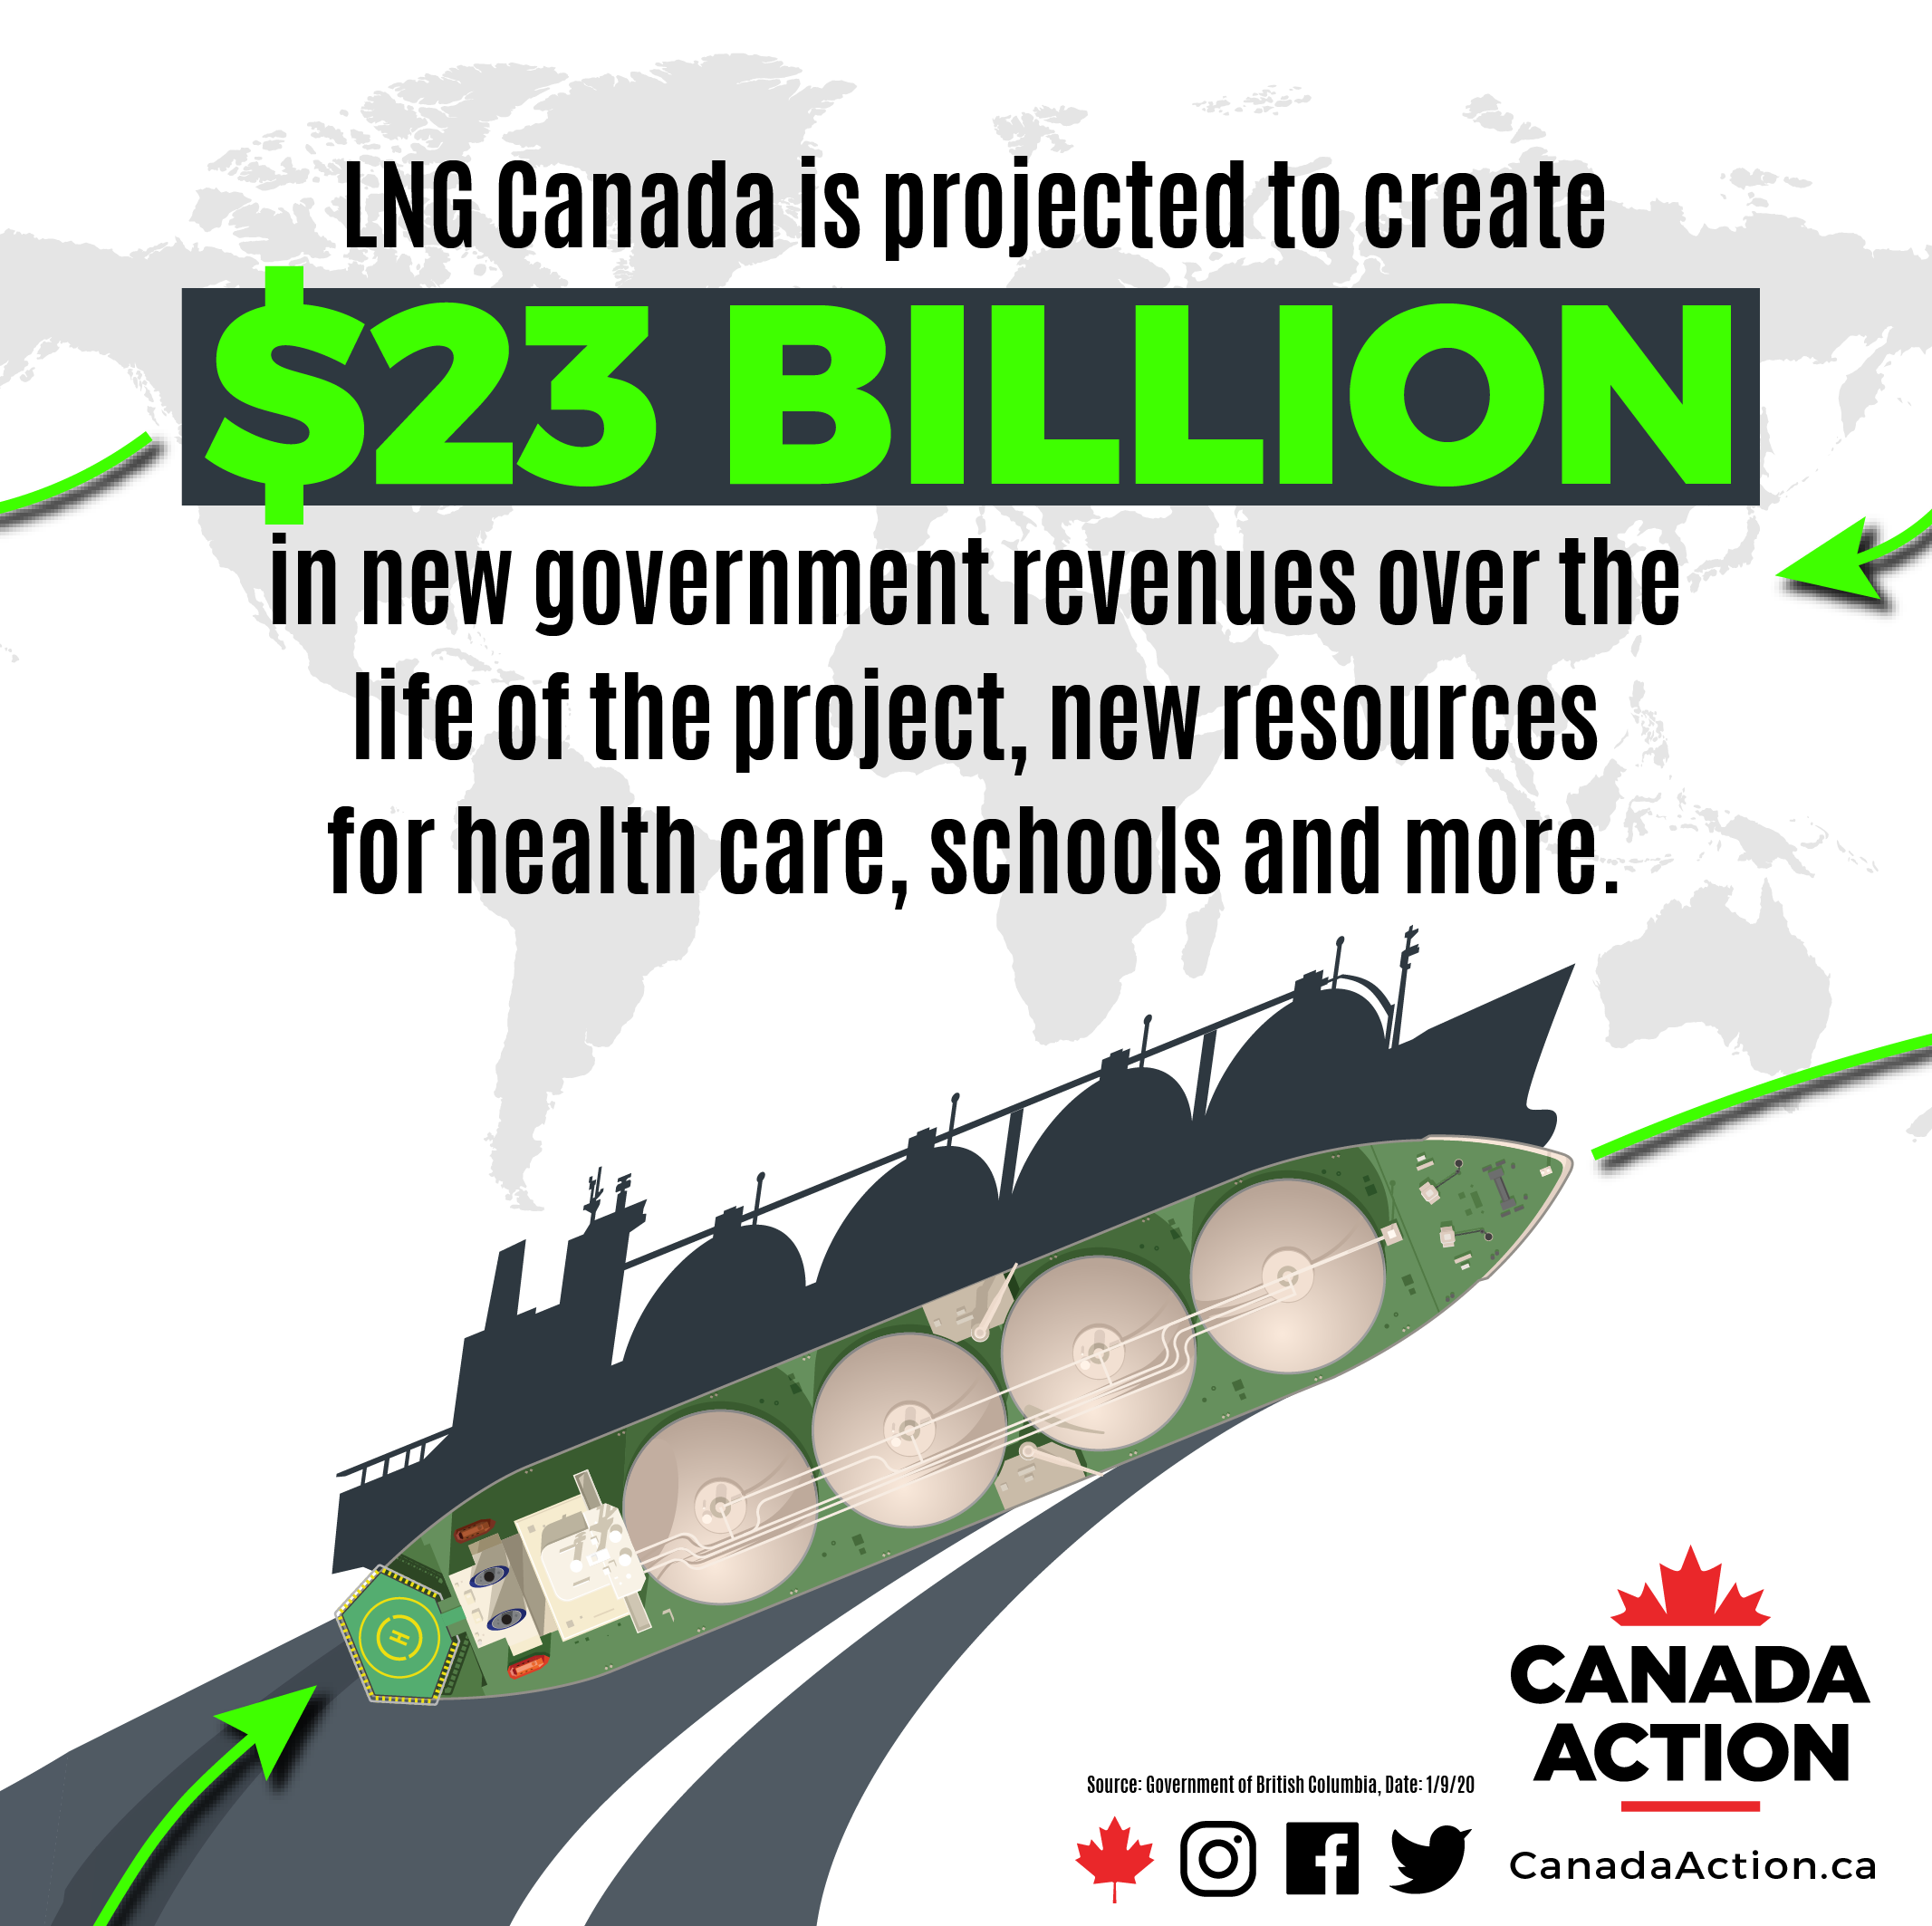 LNG Canada Economic Benefits $23 billion in government revenues